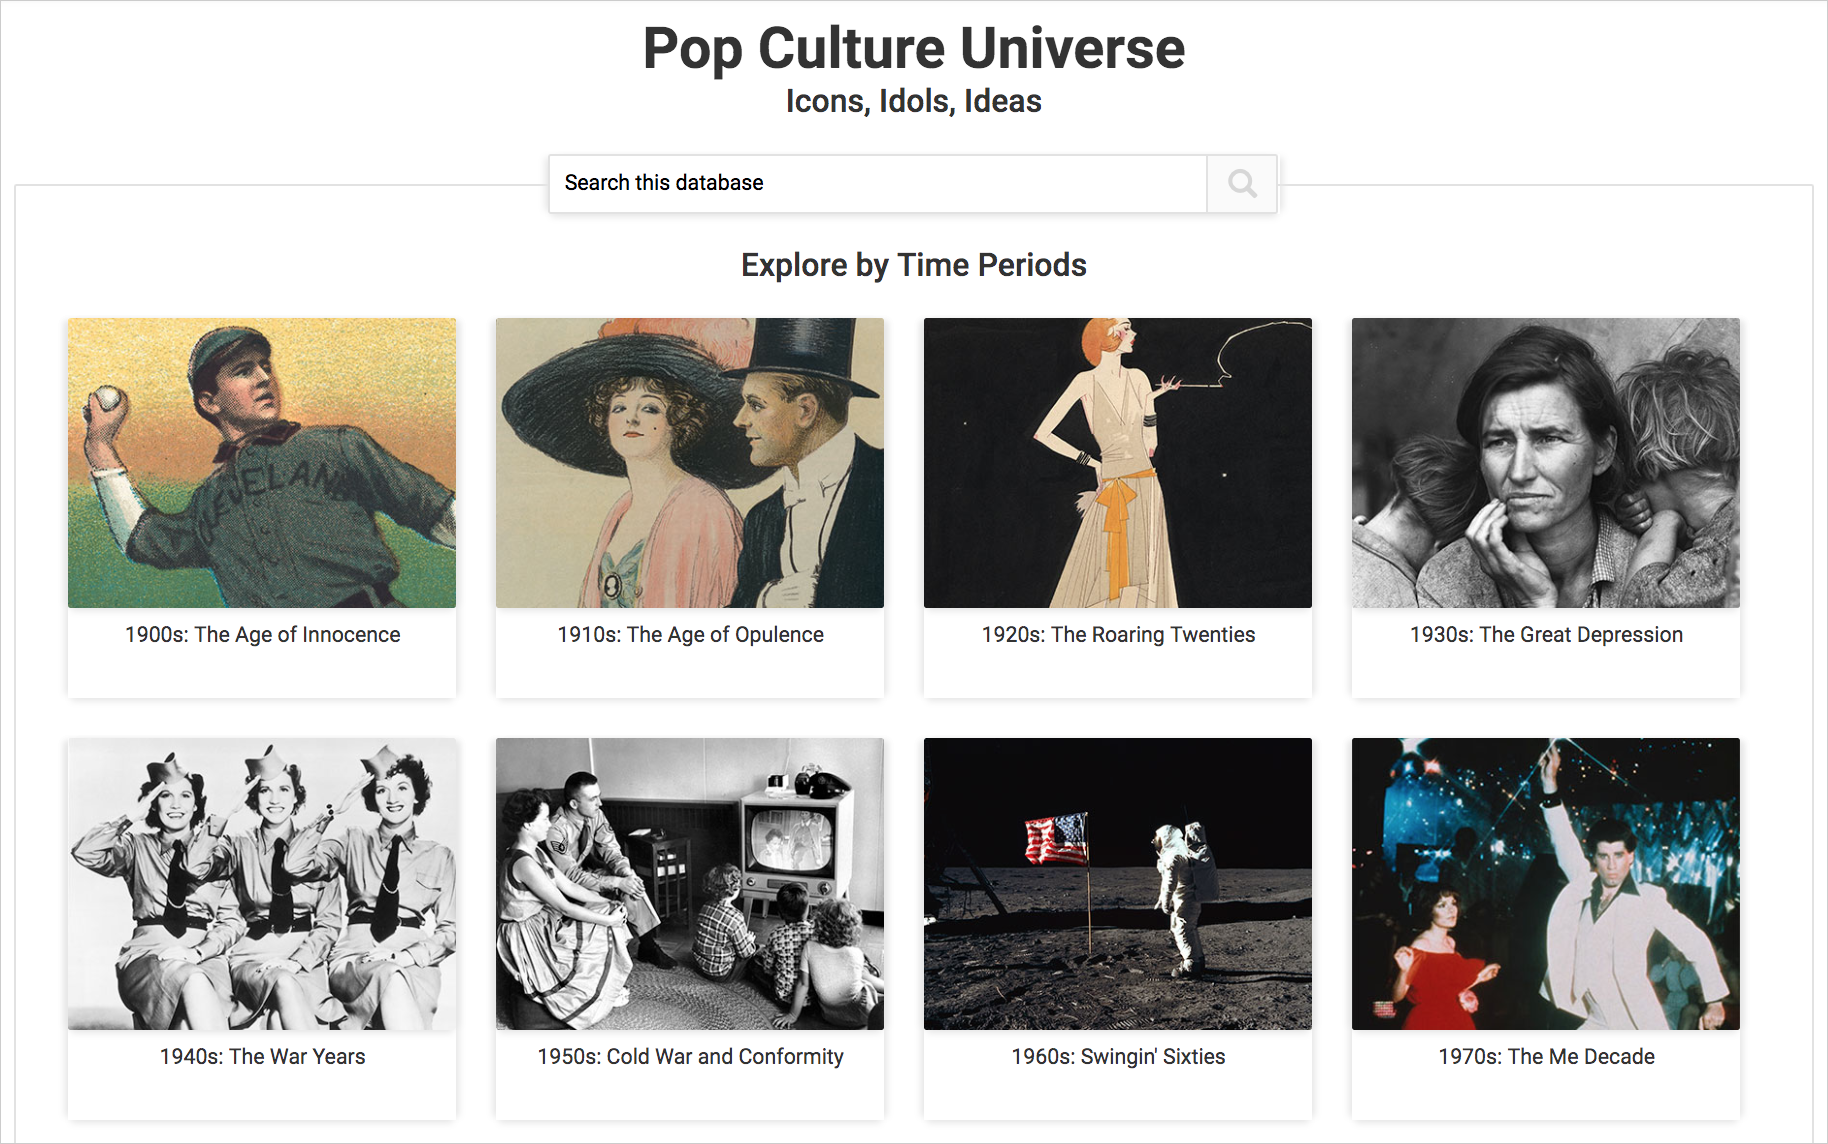 Pop Culture Universe cover image